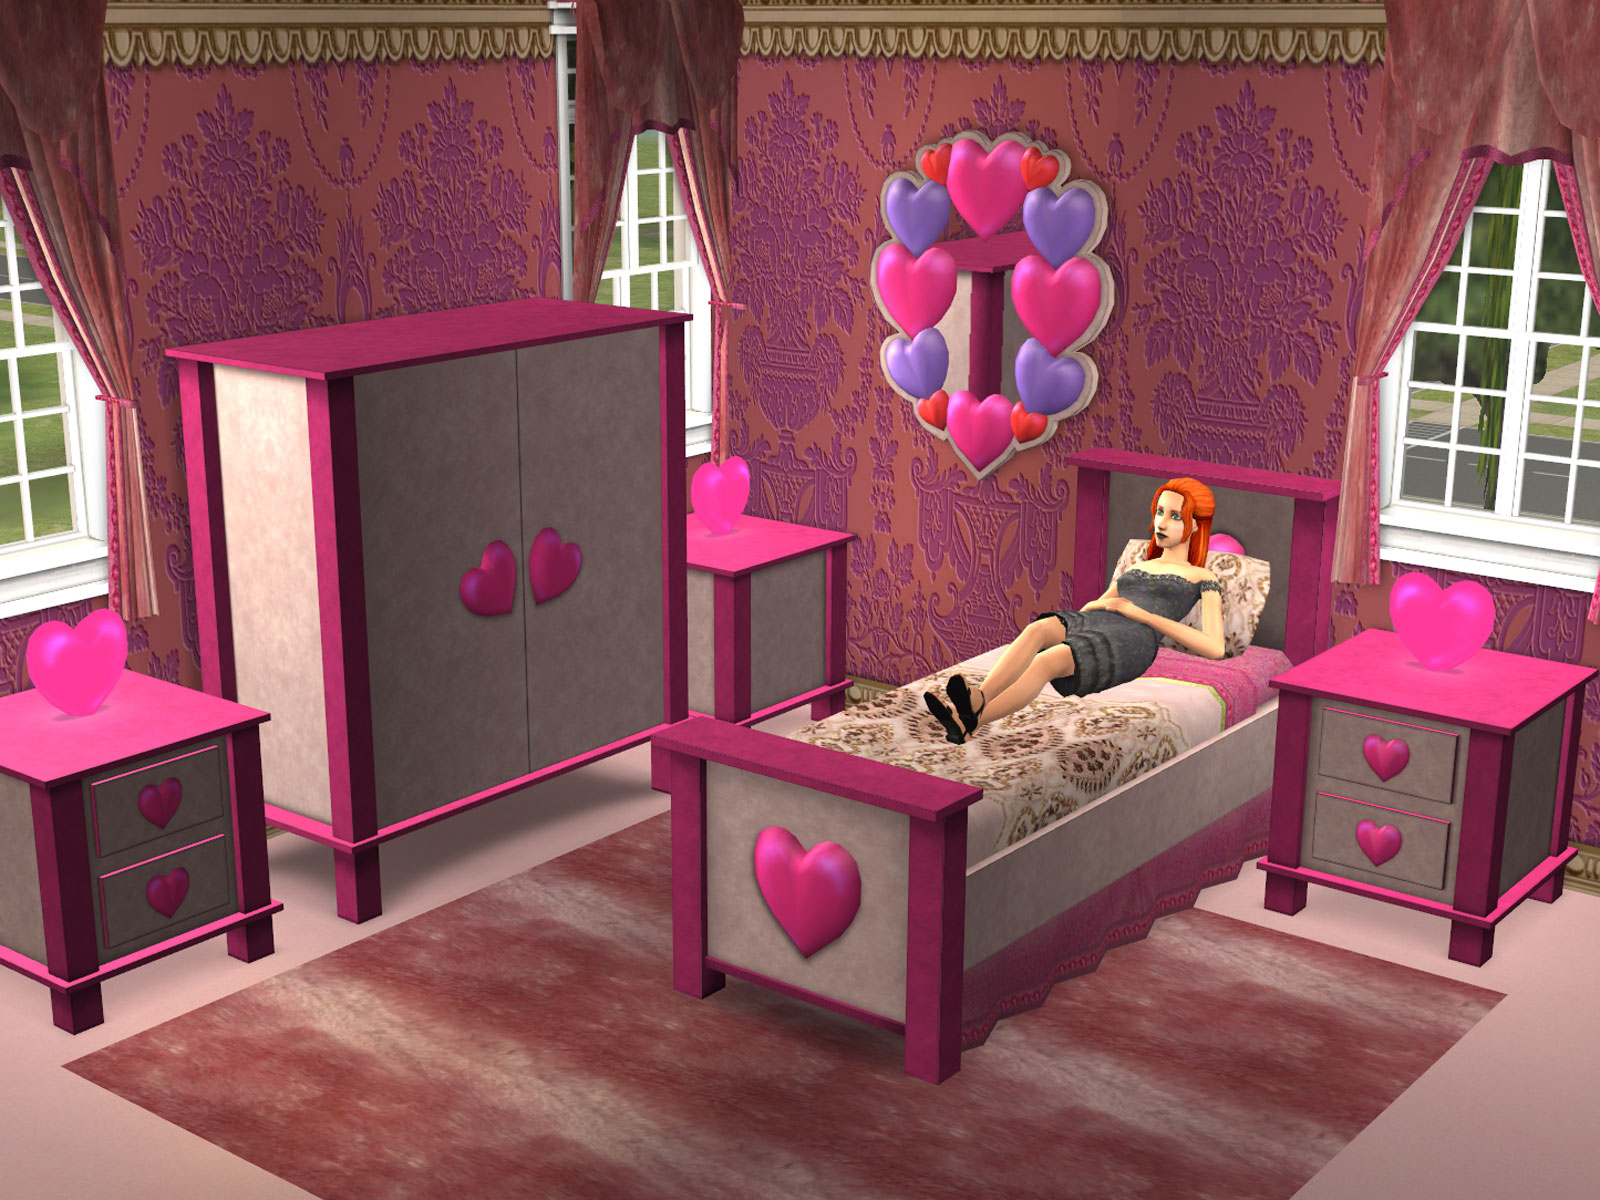 http://www.parsimonious.org/furniture2/files/k8-Princess_Bedroom.jpg